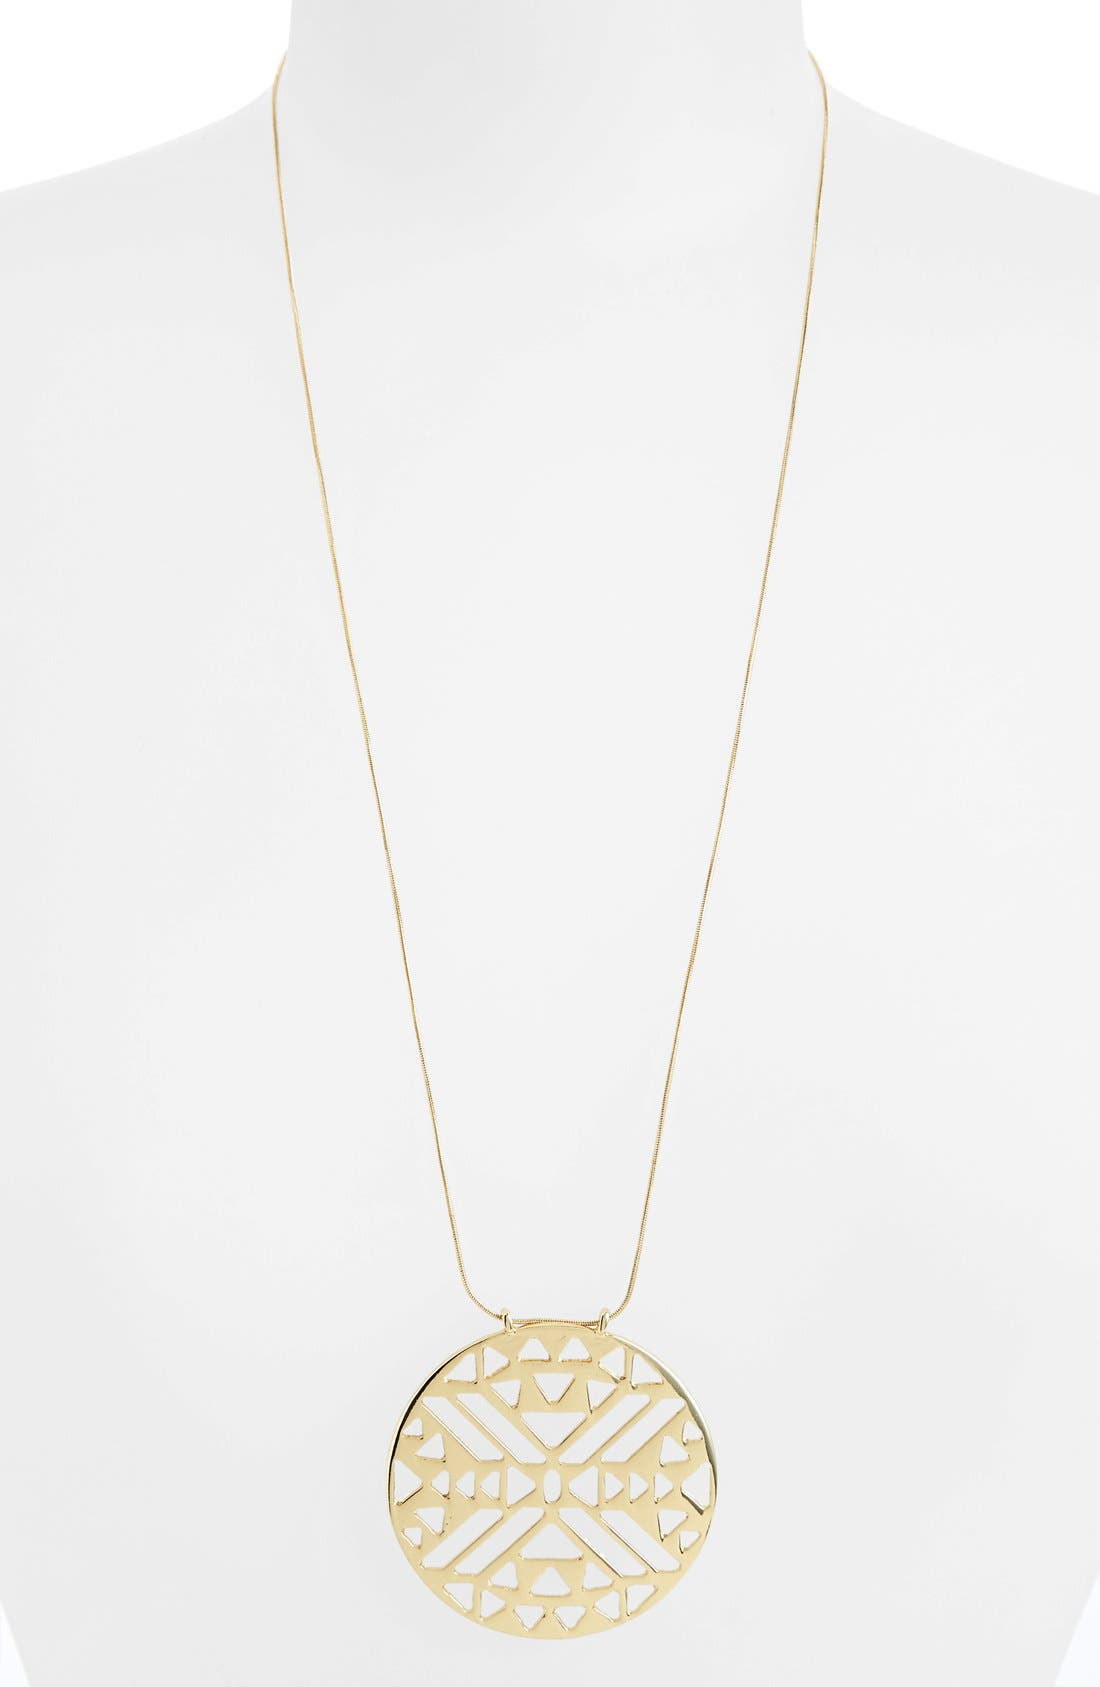 Main Image - Topshop 'Aztec' Cutout Circle Necklace